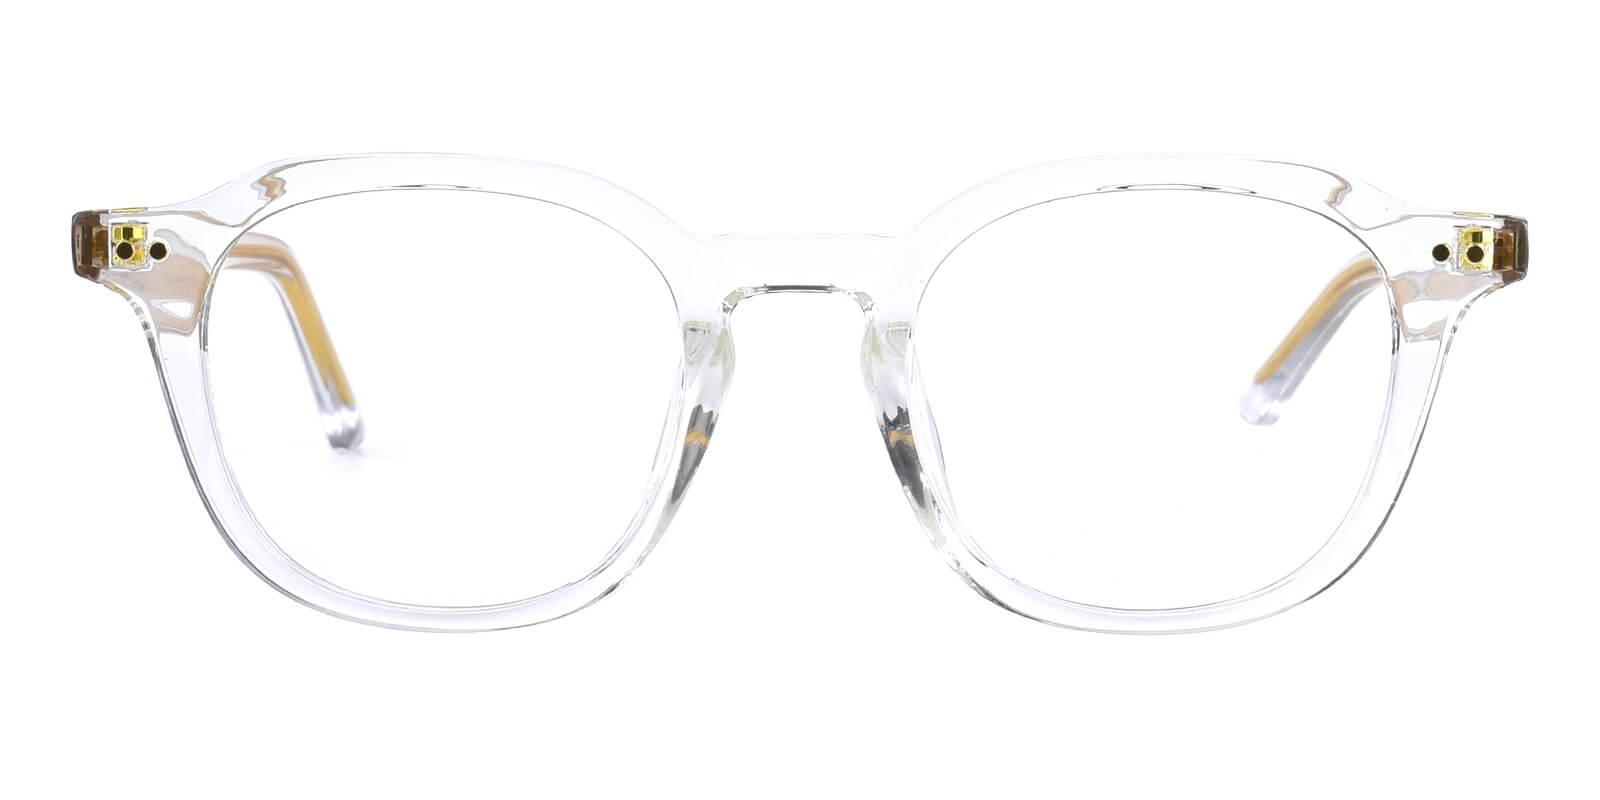 Dapper-Translucent-Round-Acetate-Eyeglasses-additional2